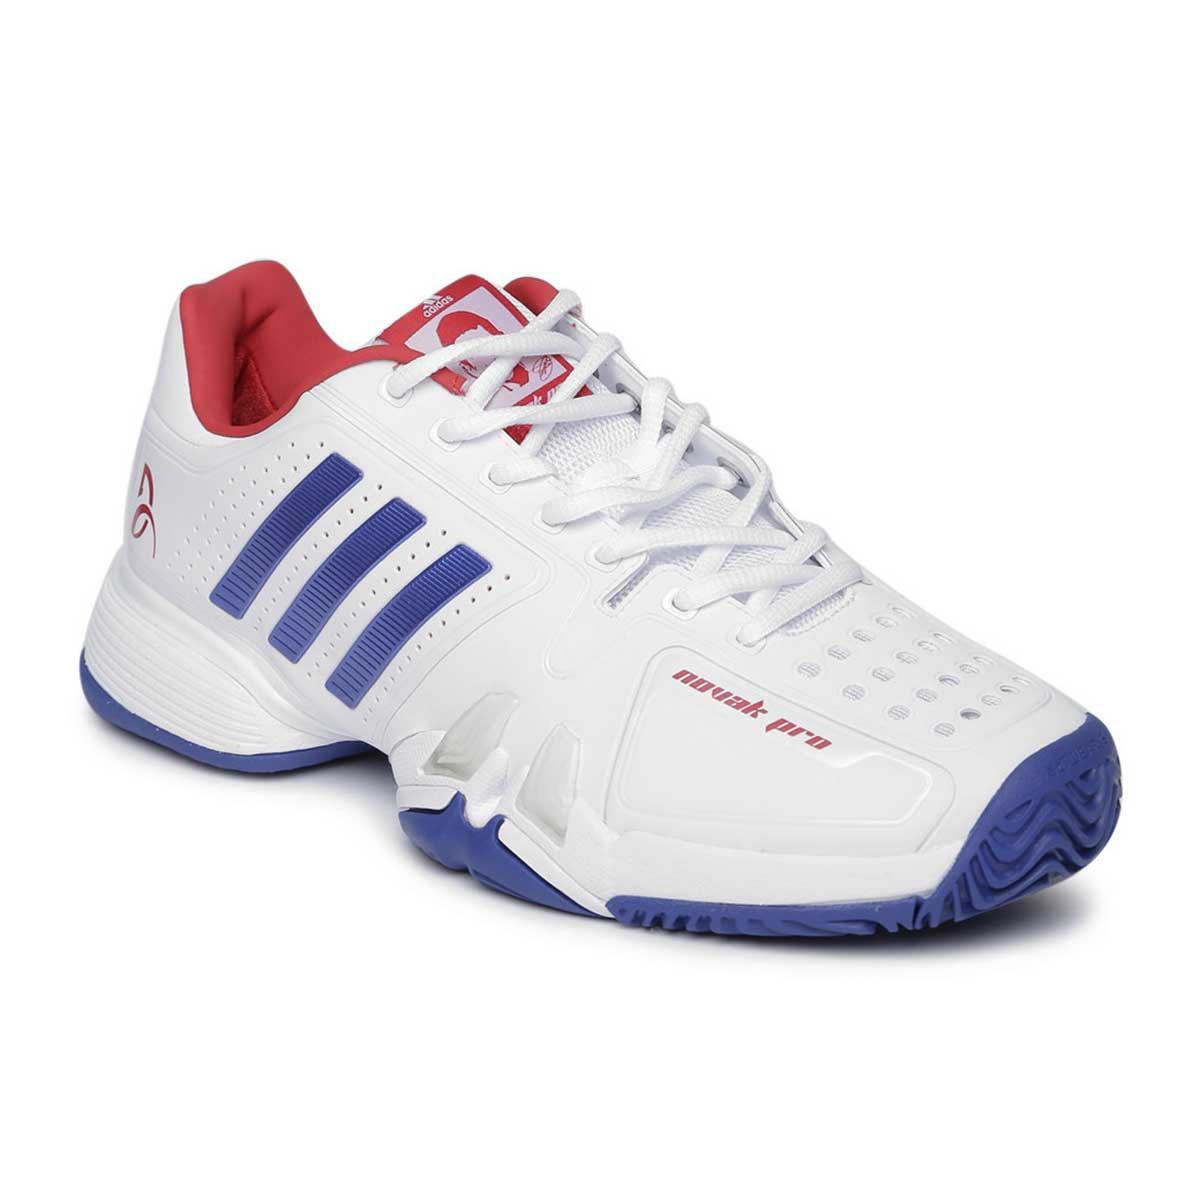 2ccc8f735 Buy Adidas Novak Pro Tennis Shoes (White Royal Scarlet) Online